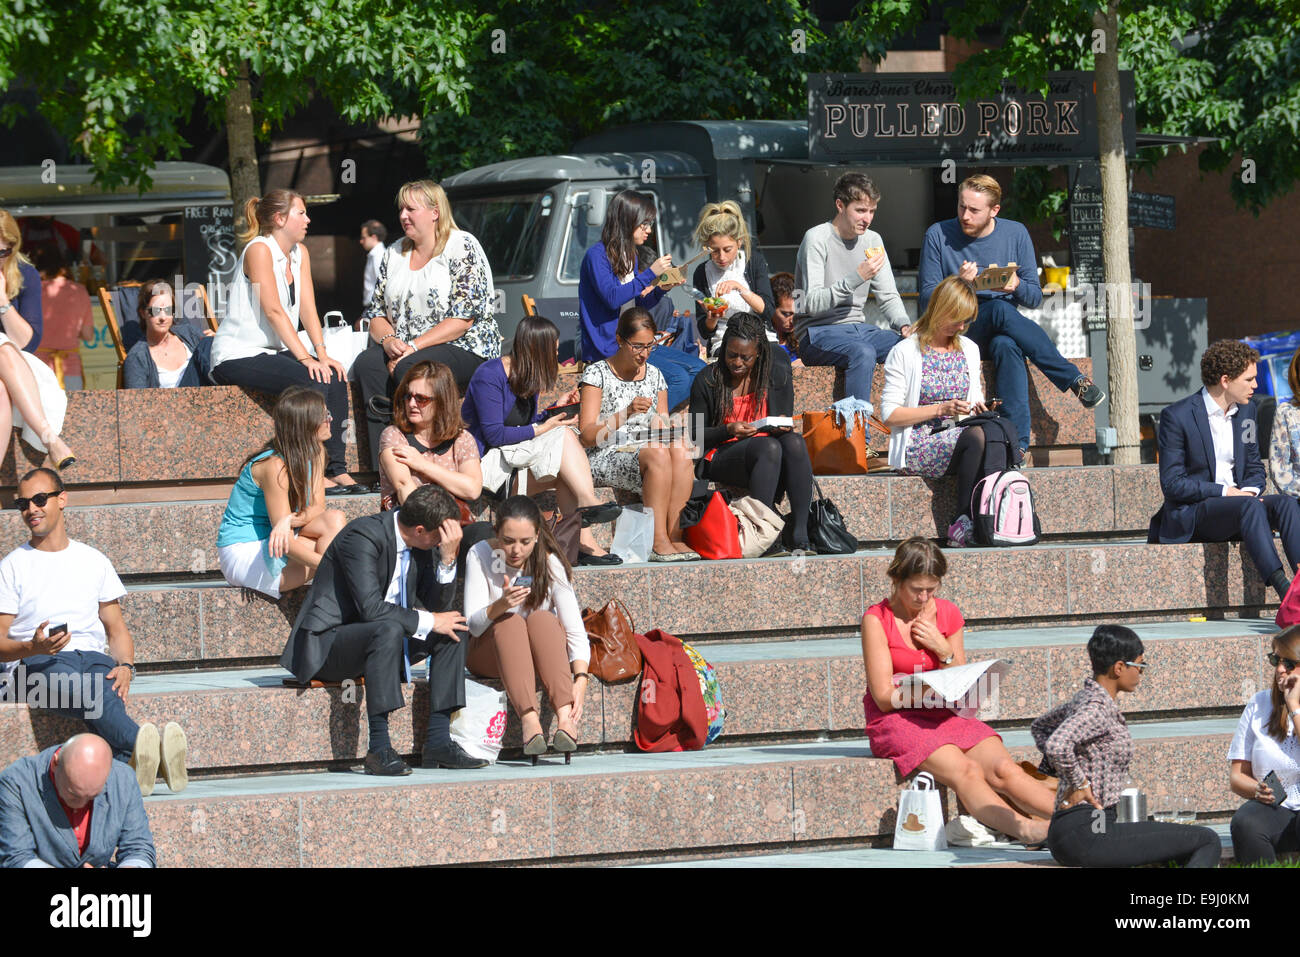 City workers London Broadgate lunch sitting sunshine - Stock Image